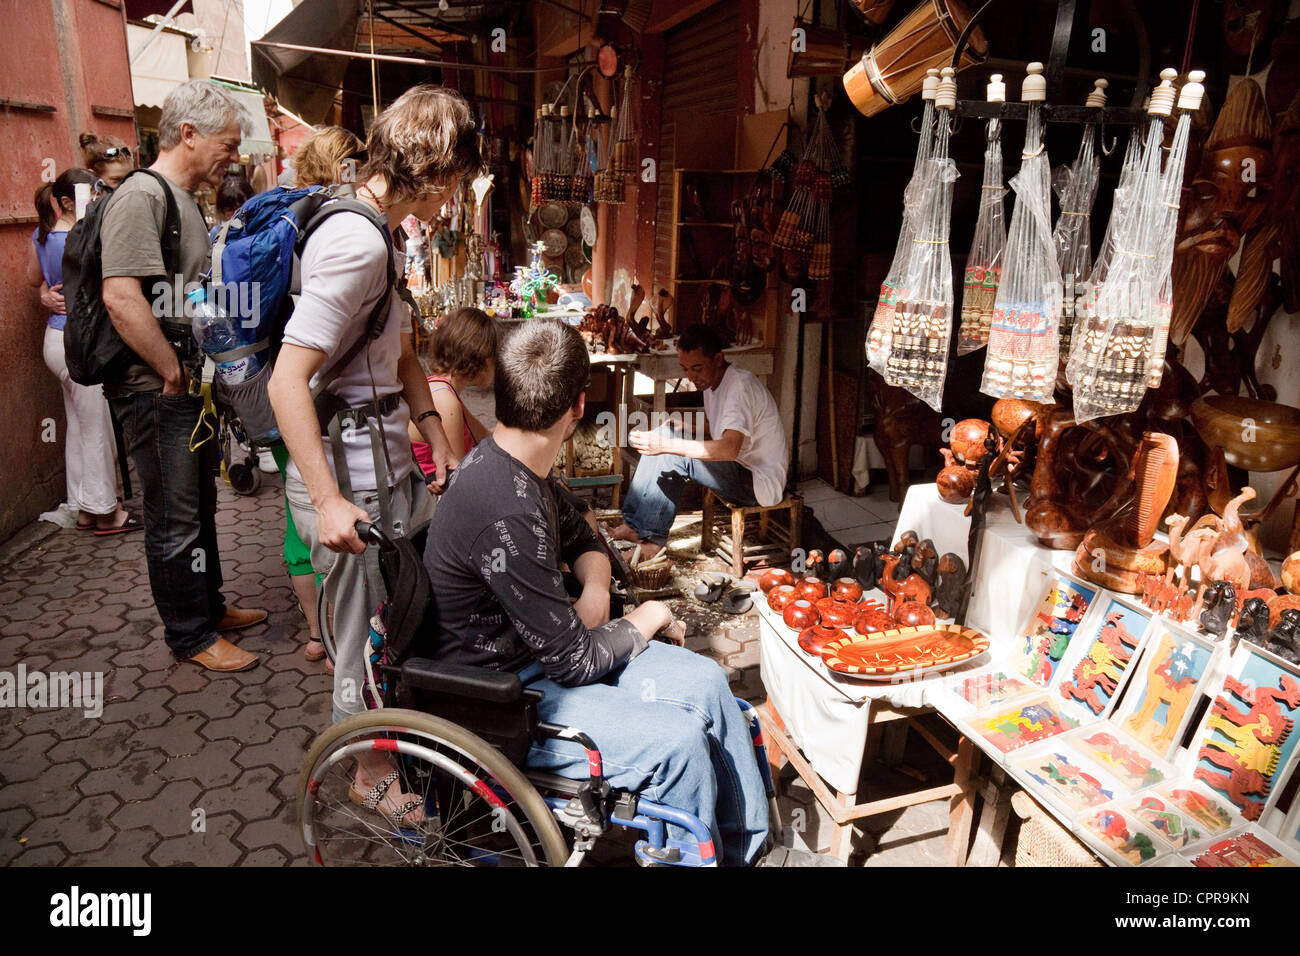 A disabled tourist in a wheelchair shopping in the souk or market, Marrakech, Morocco, Africa - Stock Image